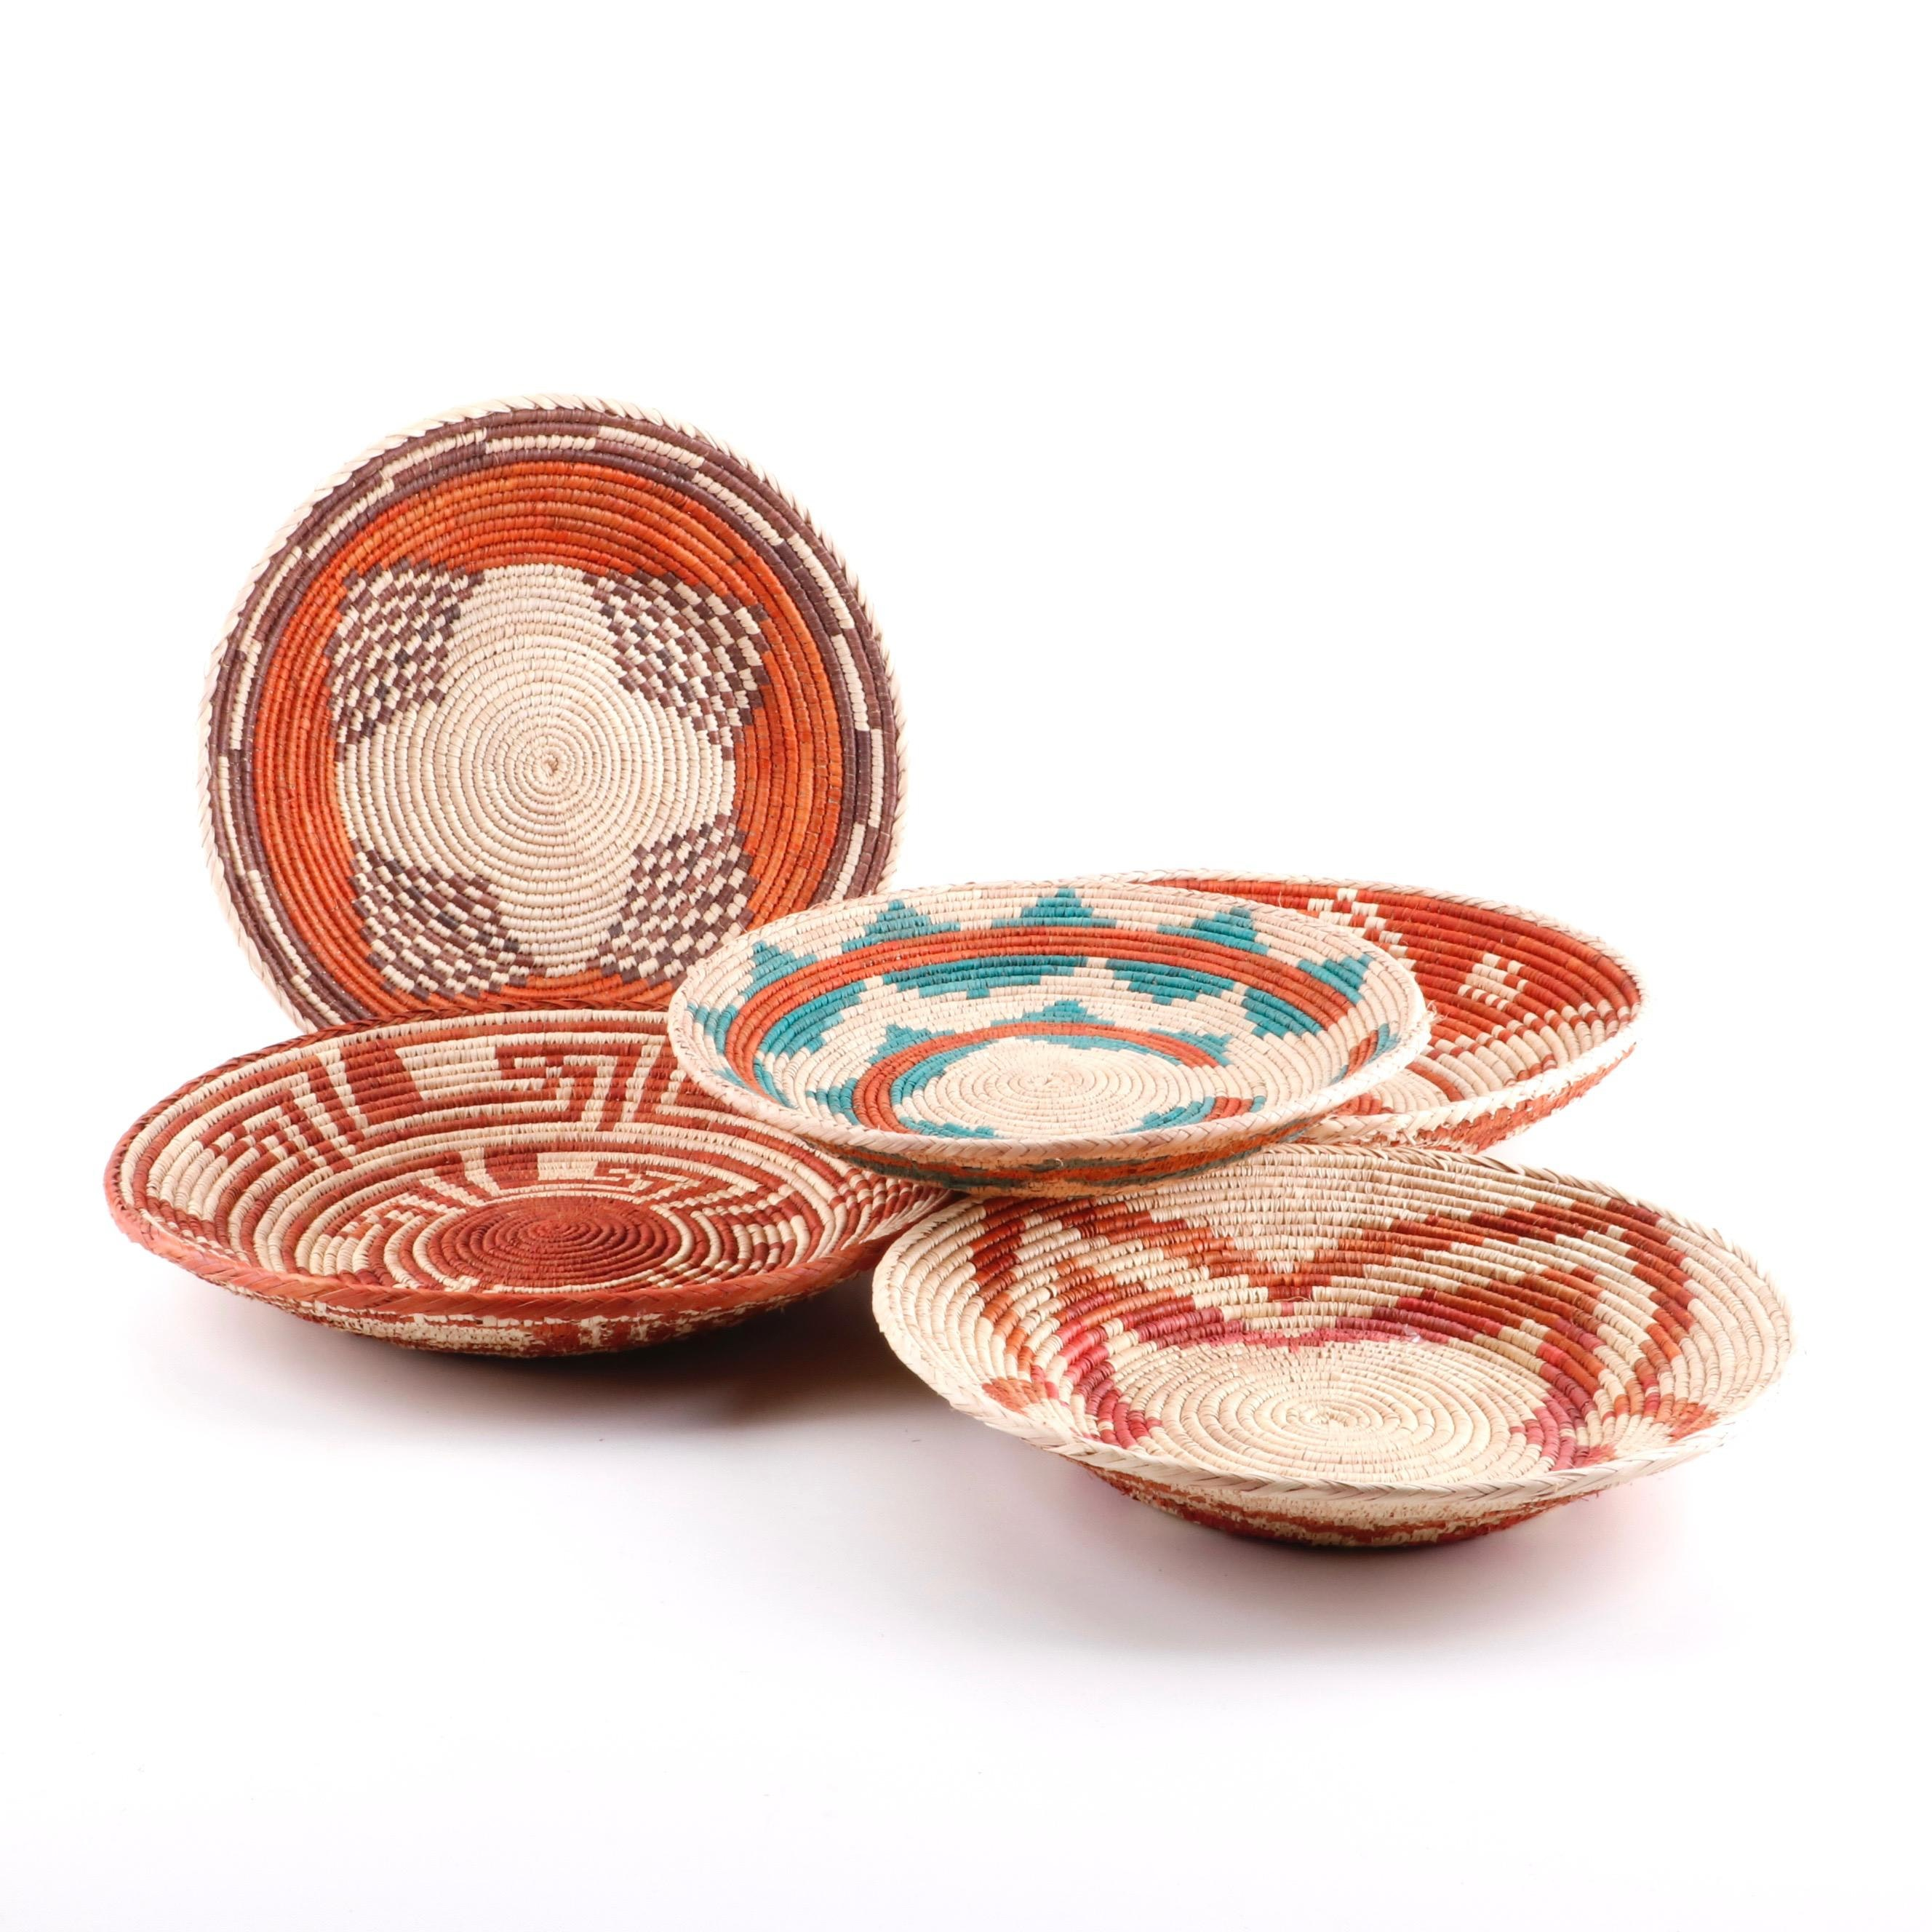 East African Style Handwoven Baskets